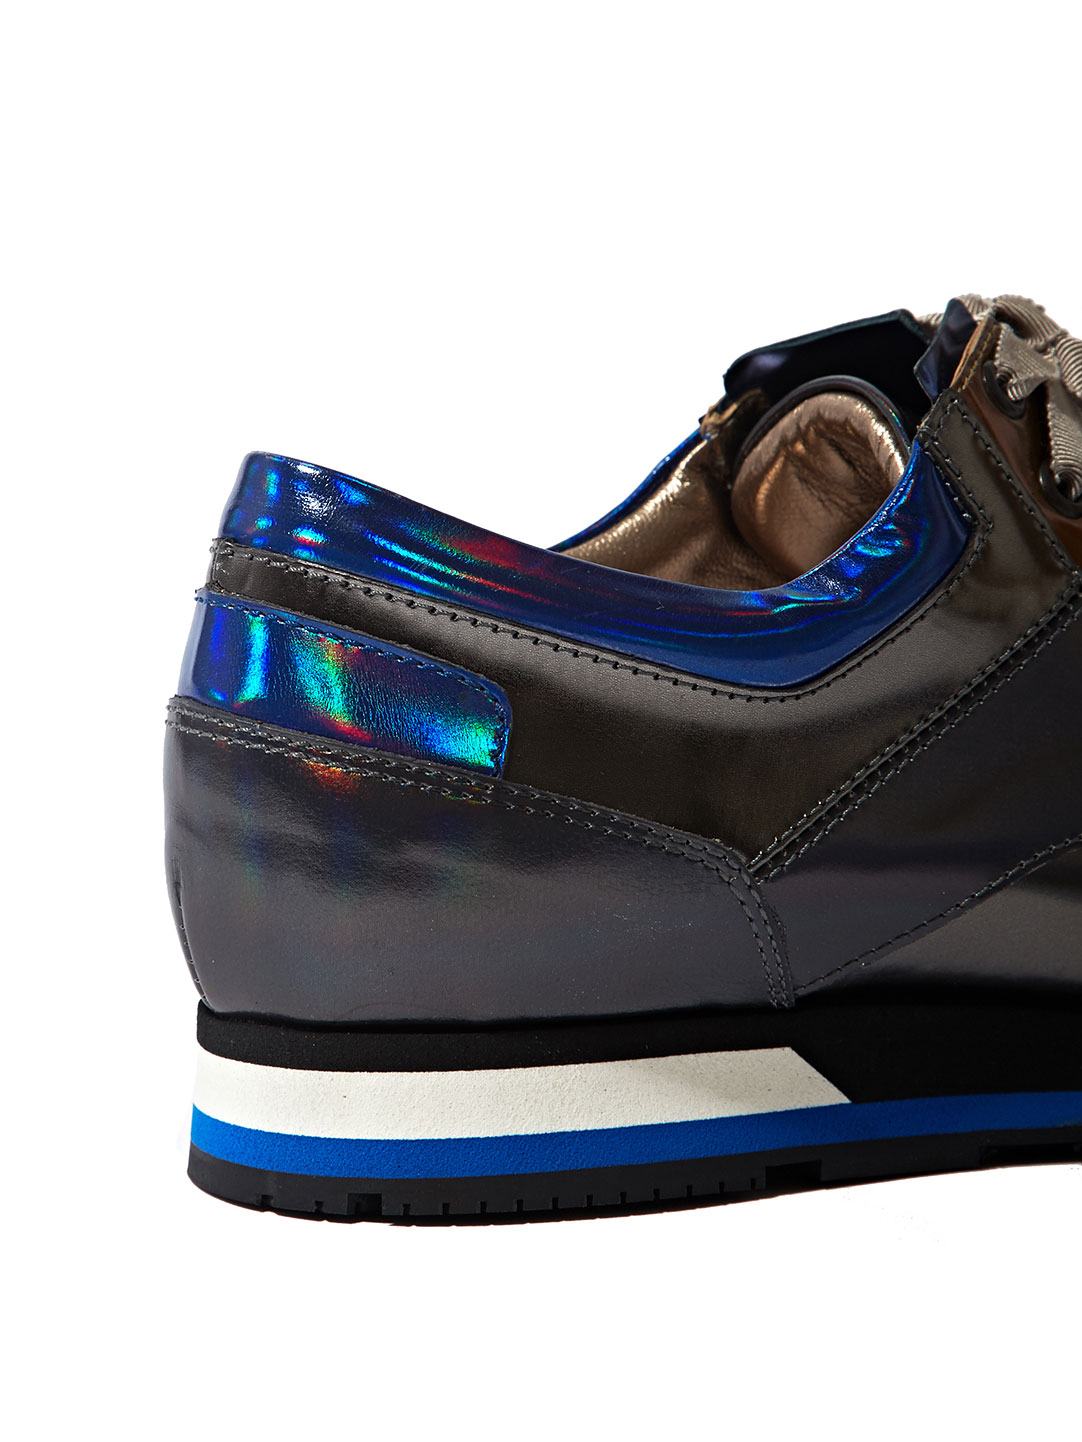 Lanvin Womens Holographic Leather Sneakers in Gray | Lyst